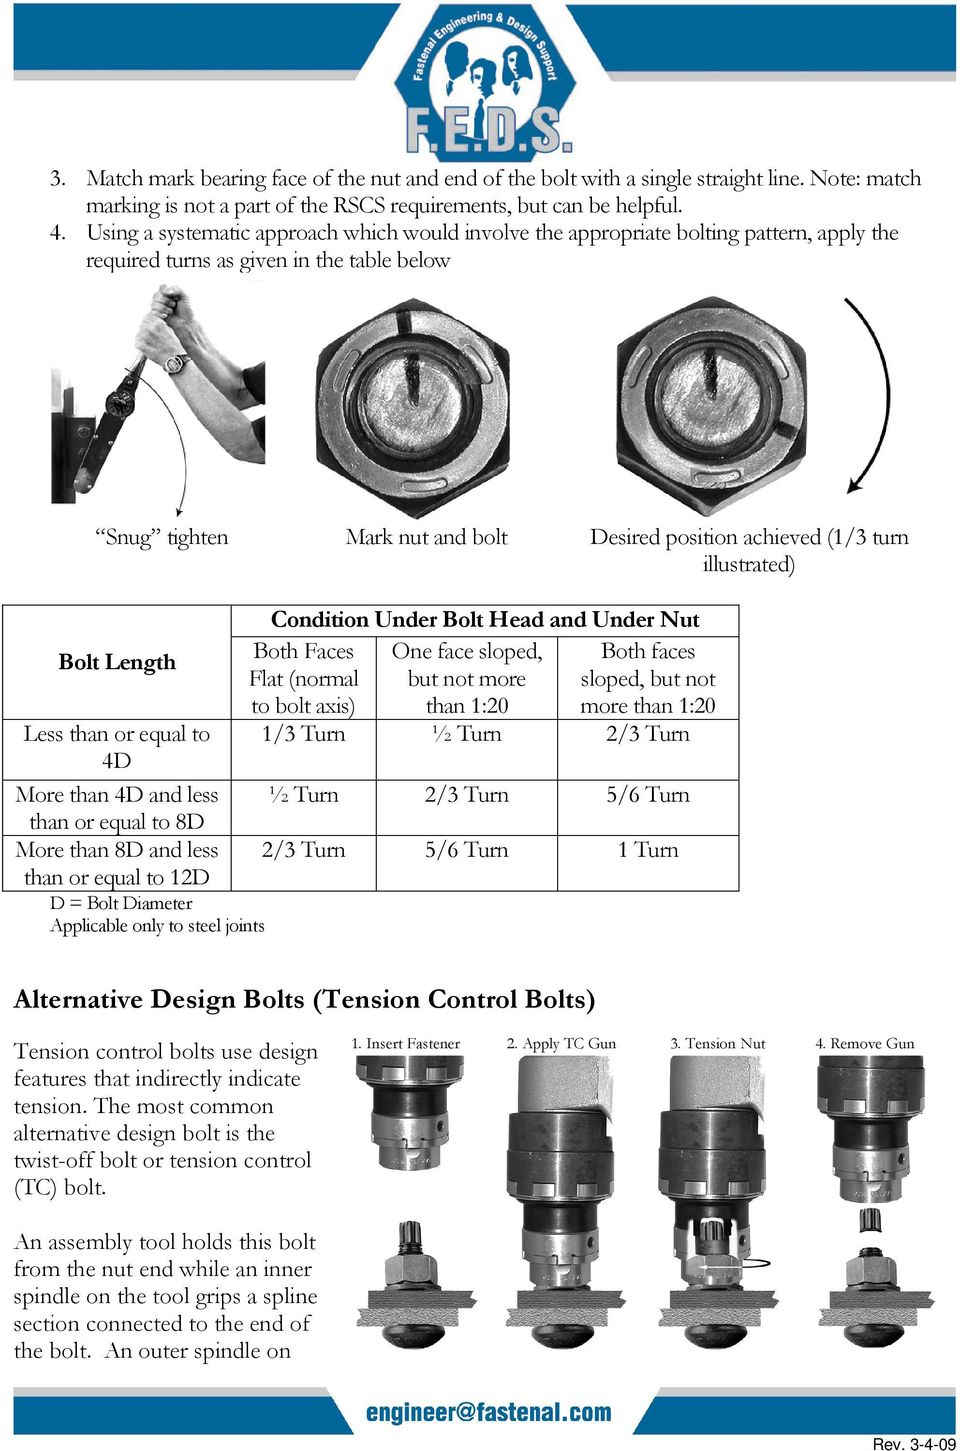 turn illustrated) Bolt Length Less than or equal to 4D More than 4D and less than or equal to 8D More than 8D and less than or equal to 12D D = Bolt Diameter Applicable only to steel joints Condition